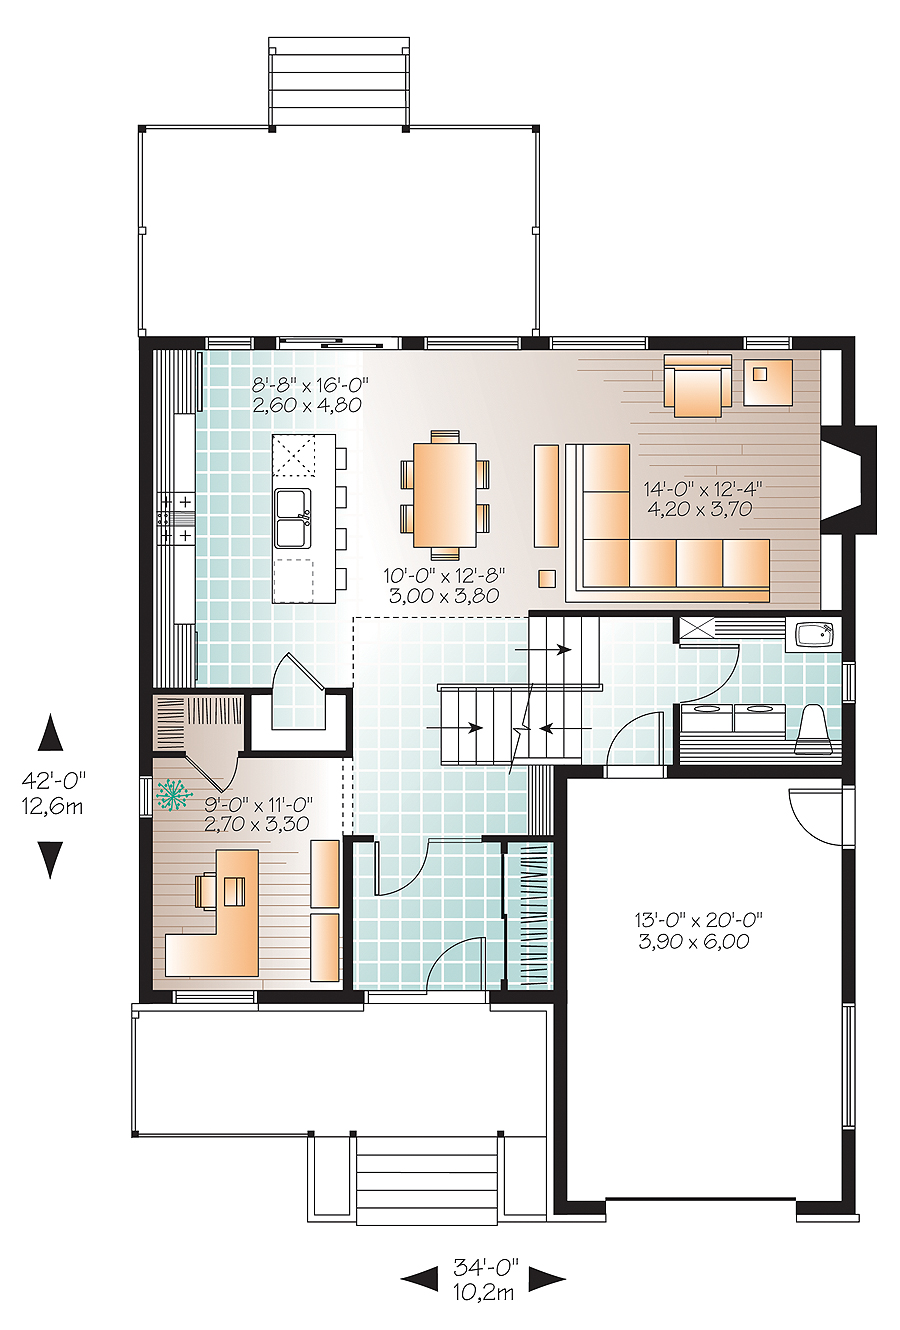 Modern house plan with 3 bedrooms and 2 5 baths plan 4765 for Rear master bedroom house plans